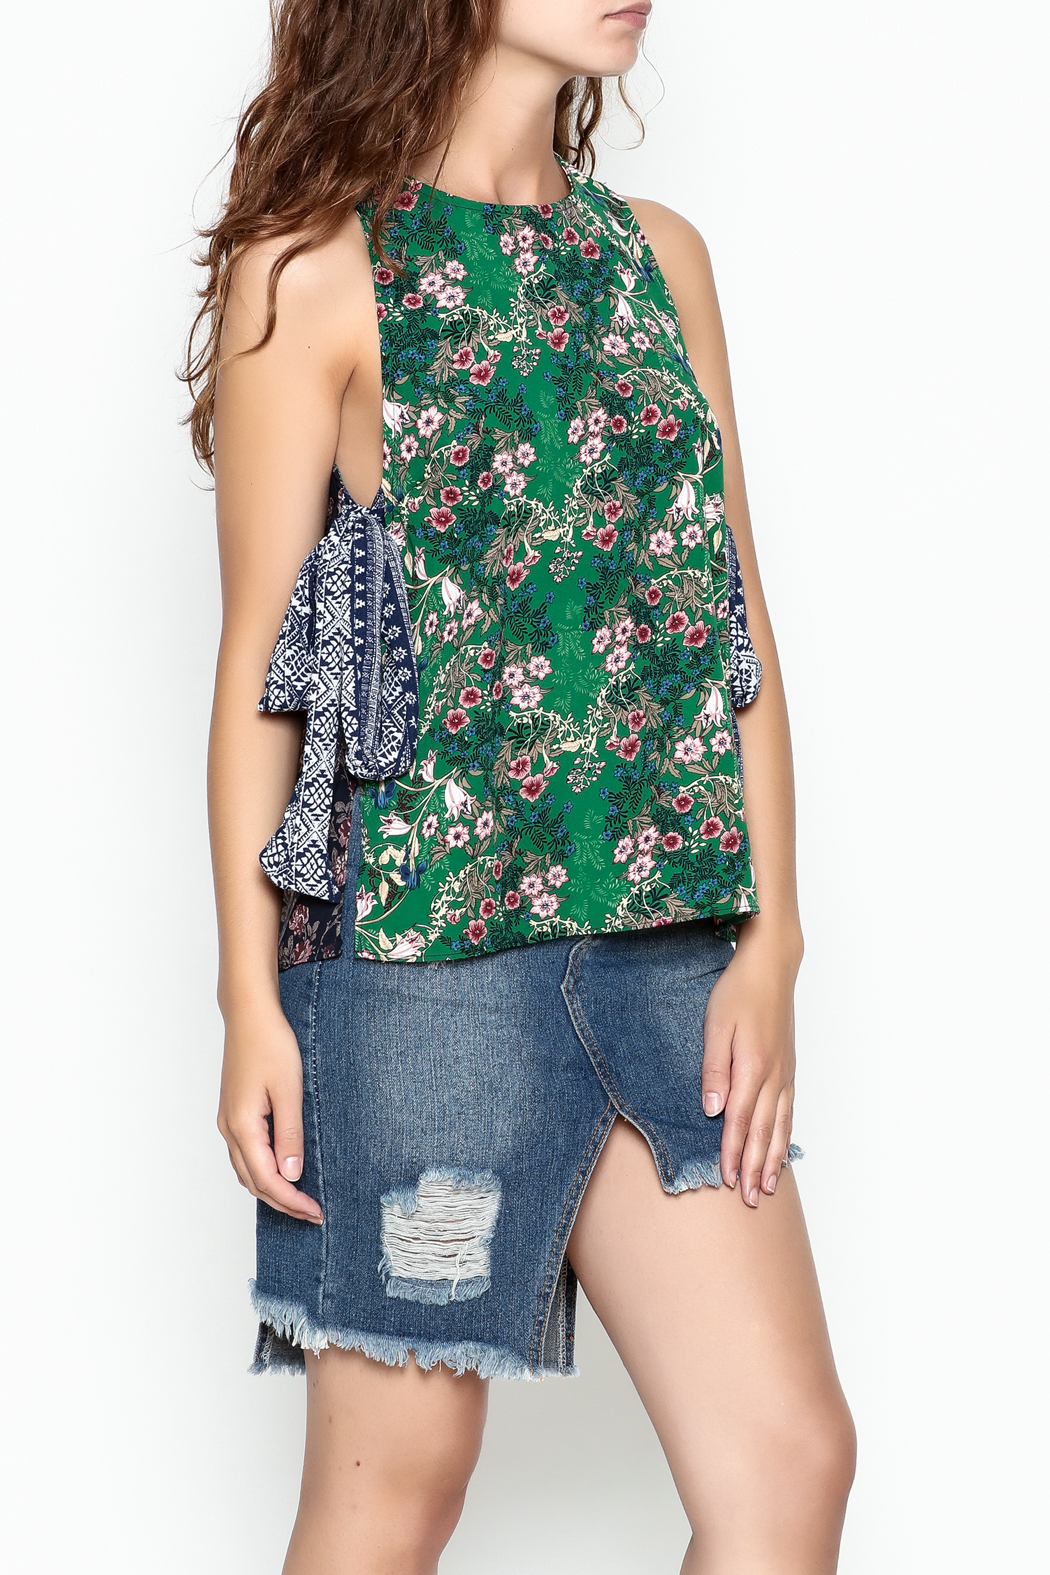 hummingbird Mix Print Top - Side Cropped Image